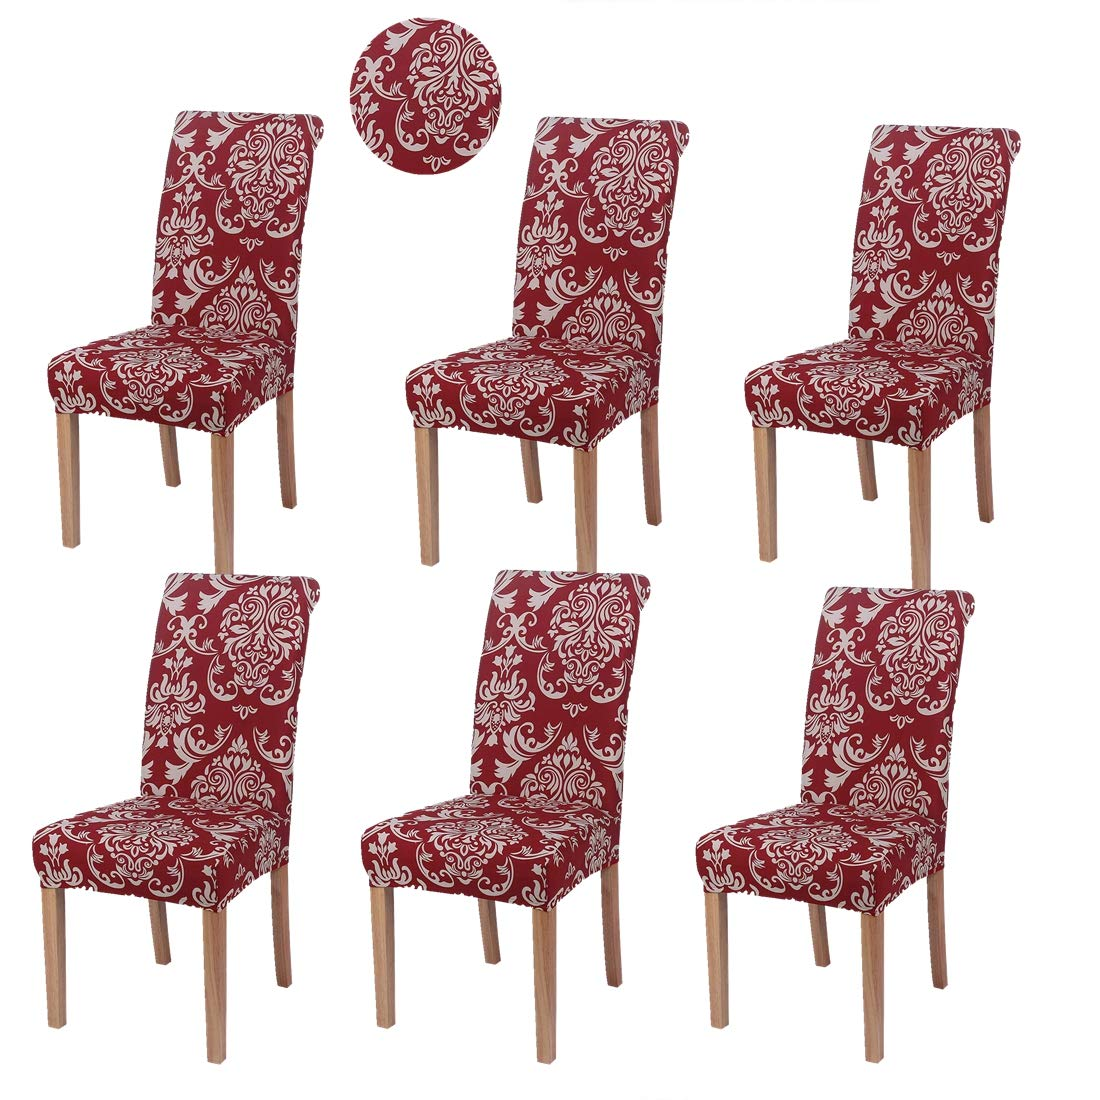 Fabric To Recover Dining Room Chairs Chair Pads Amp Cushions